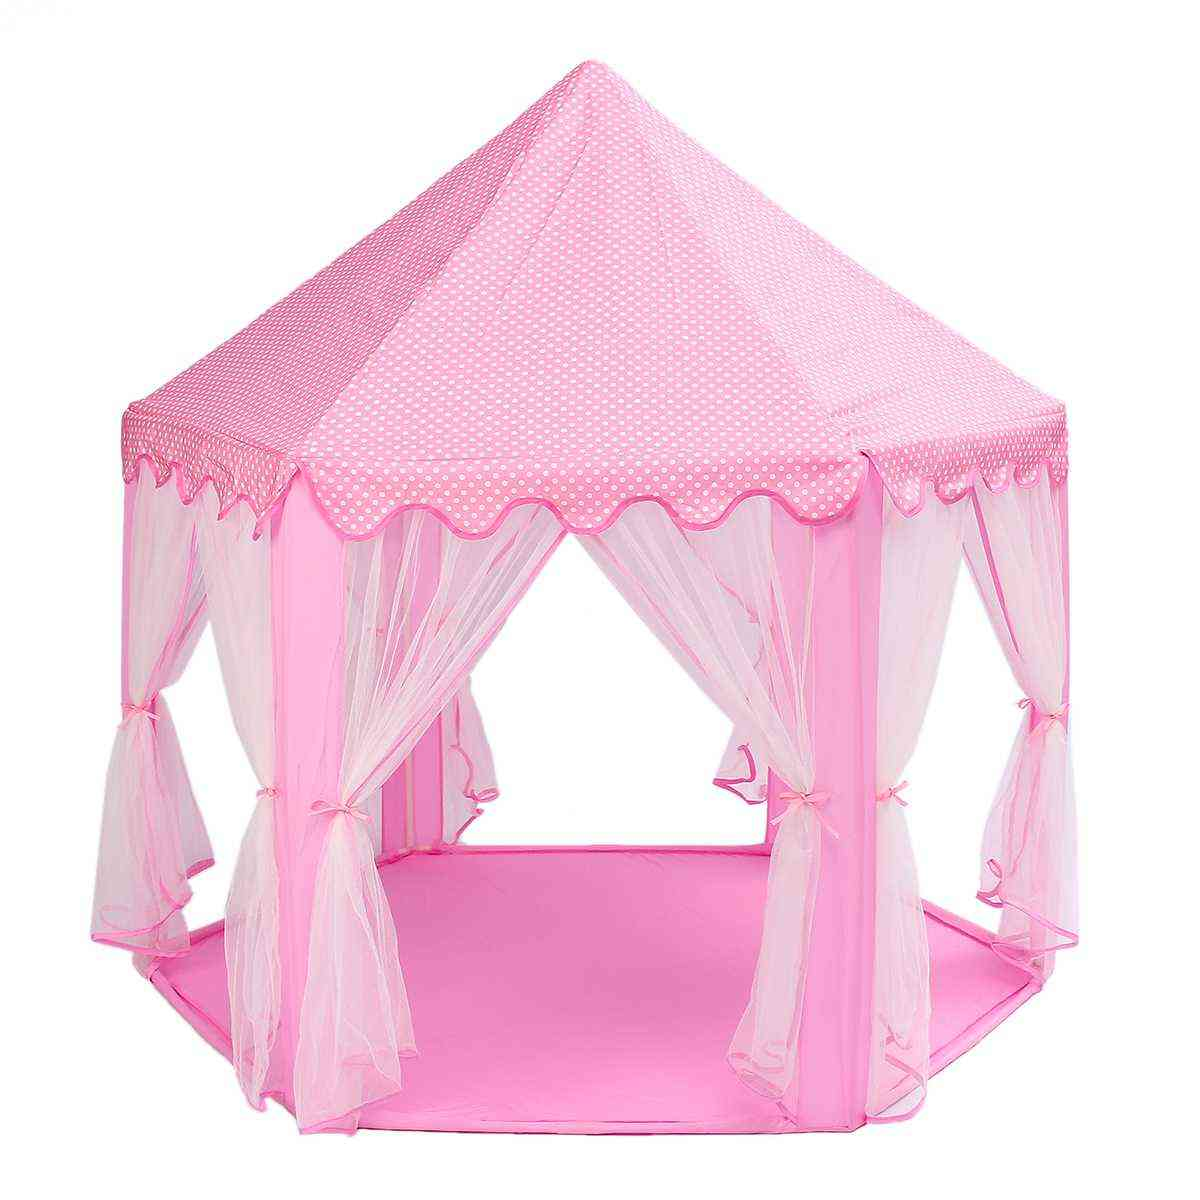 Portable Princess Castle- Play Tent With Rods